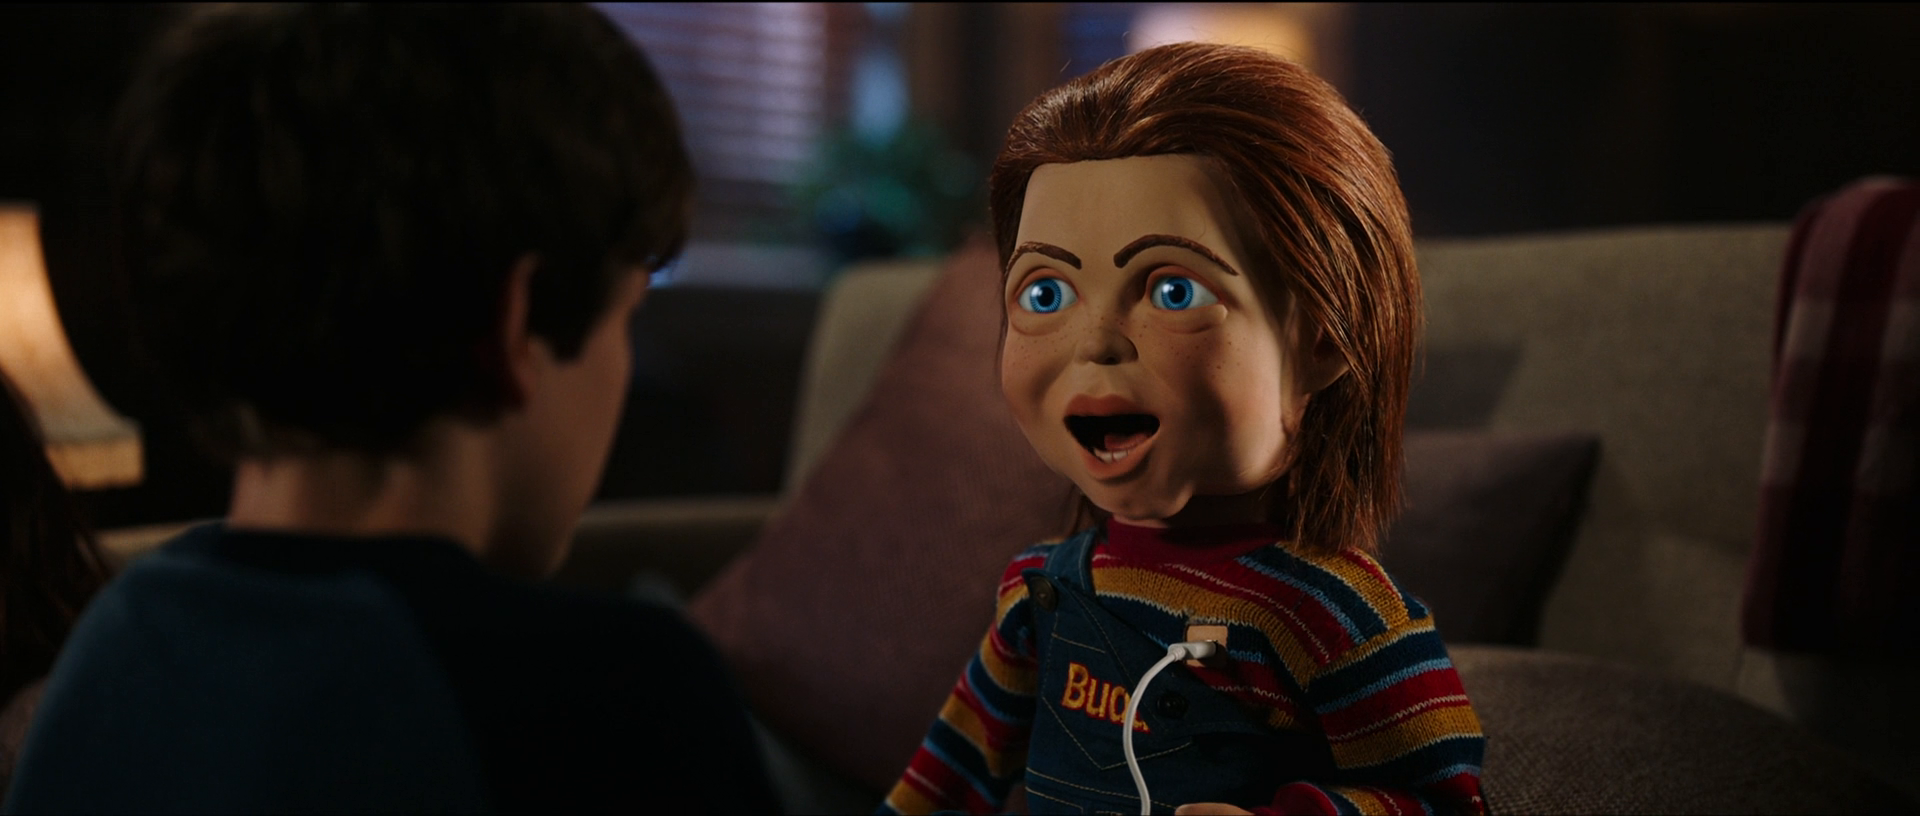 Childs Play 2019 AMZN 1080p WEB-DL DD5.1 H264-NTG